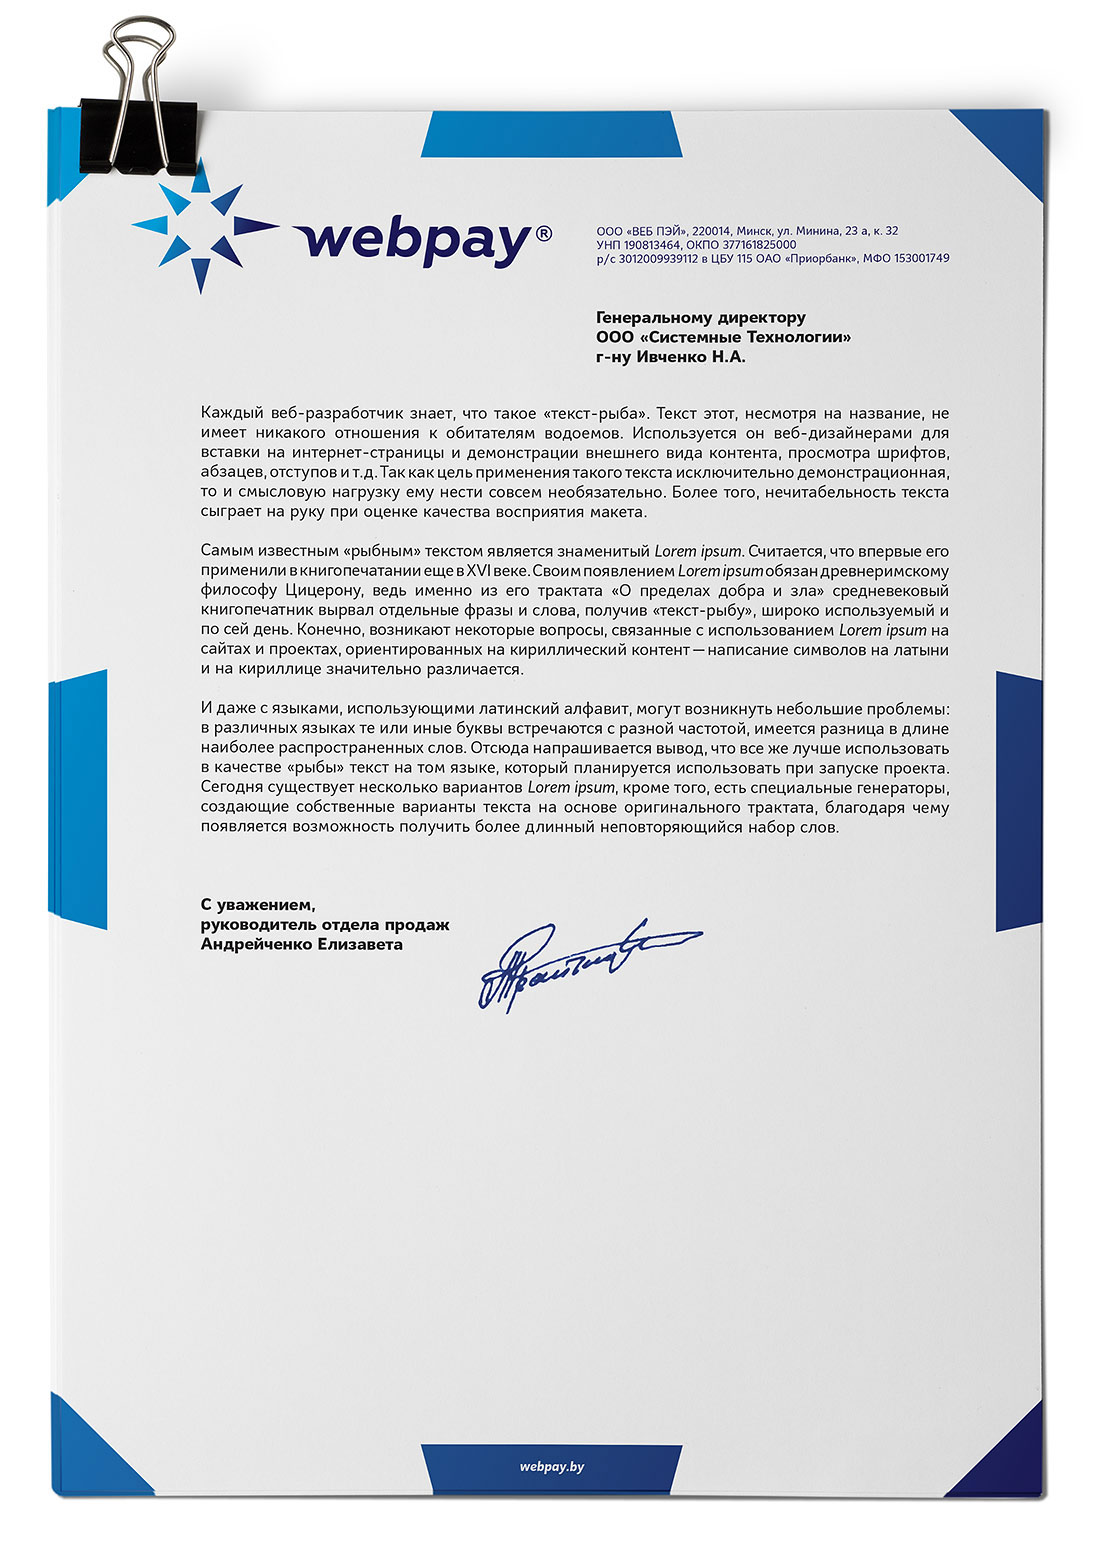 Webpay company letterhead for official letters.